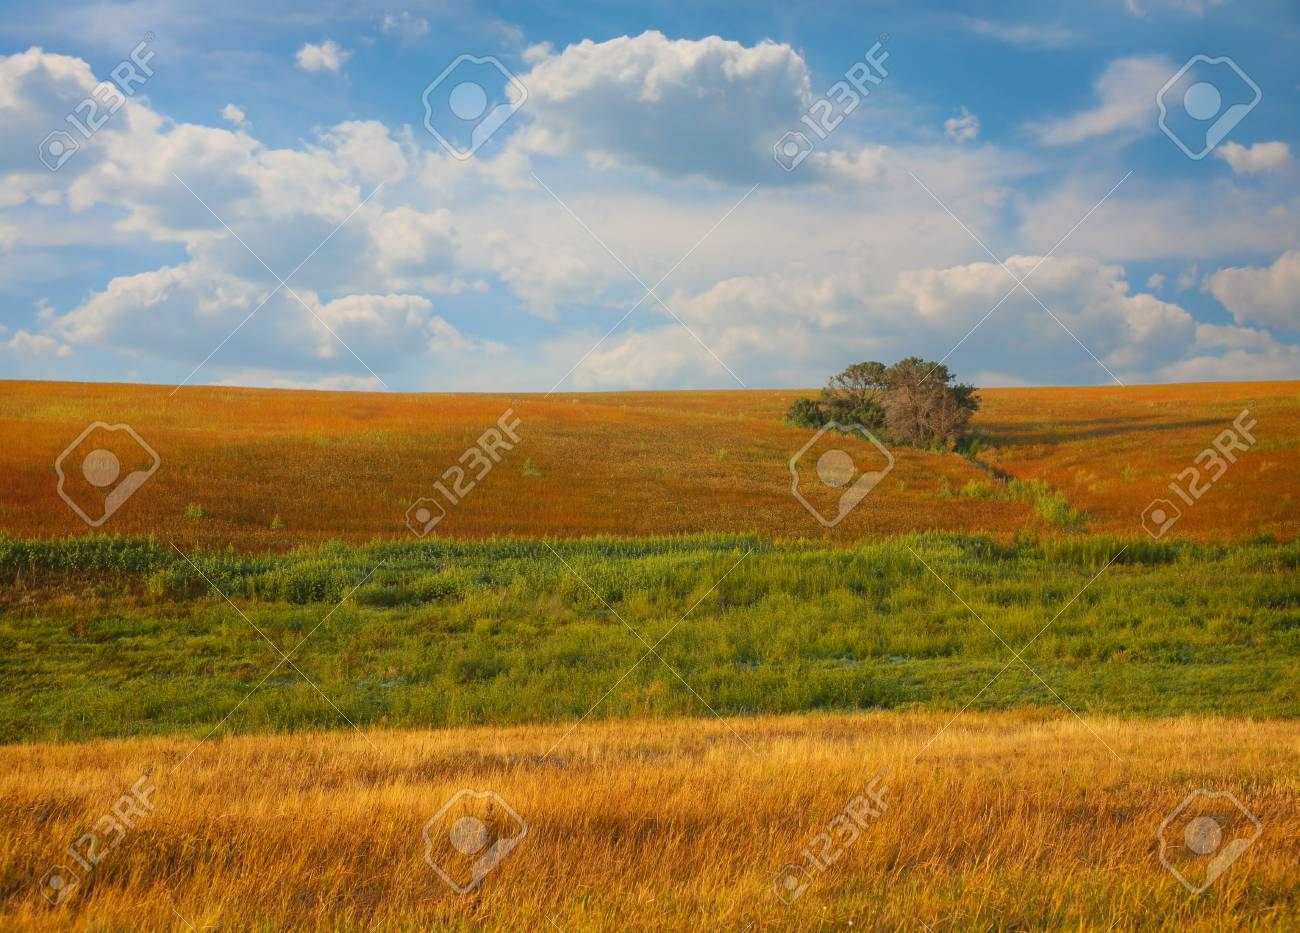 Morning landscape with  field tree and clouds Stock Photo - 16367766